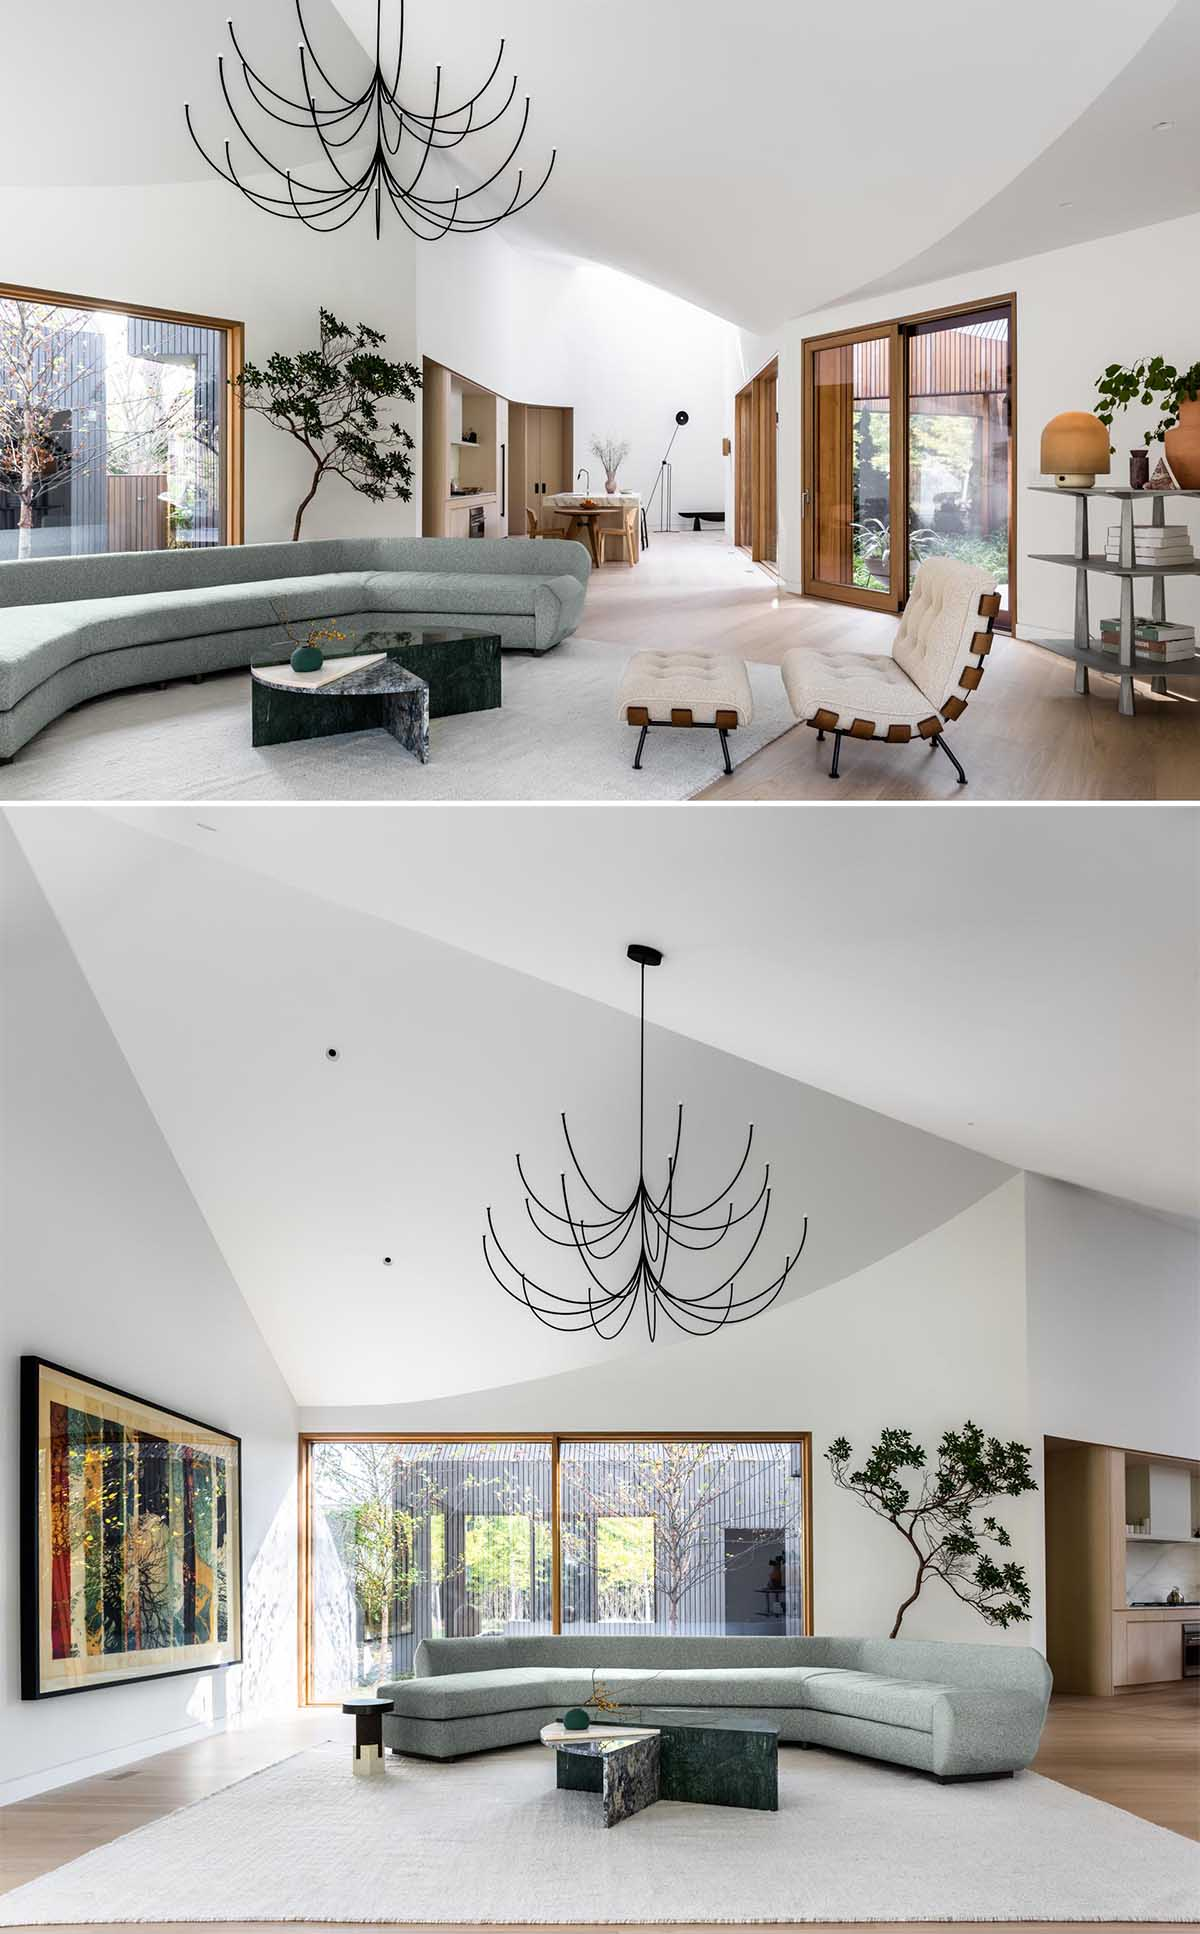 A bright white interior contrasts the exterior of the home, and creates a feeling of openness, which is also accentuated by the angled ceilings, that can be found in both the living room and kitchen.